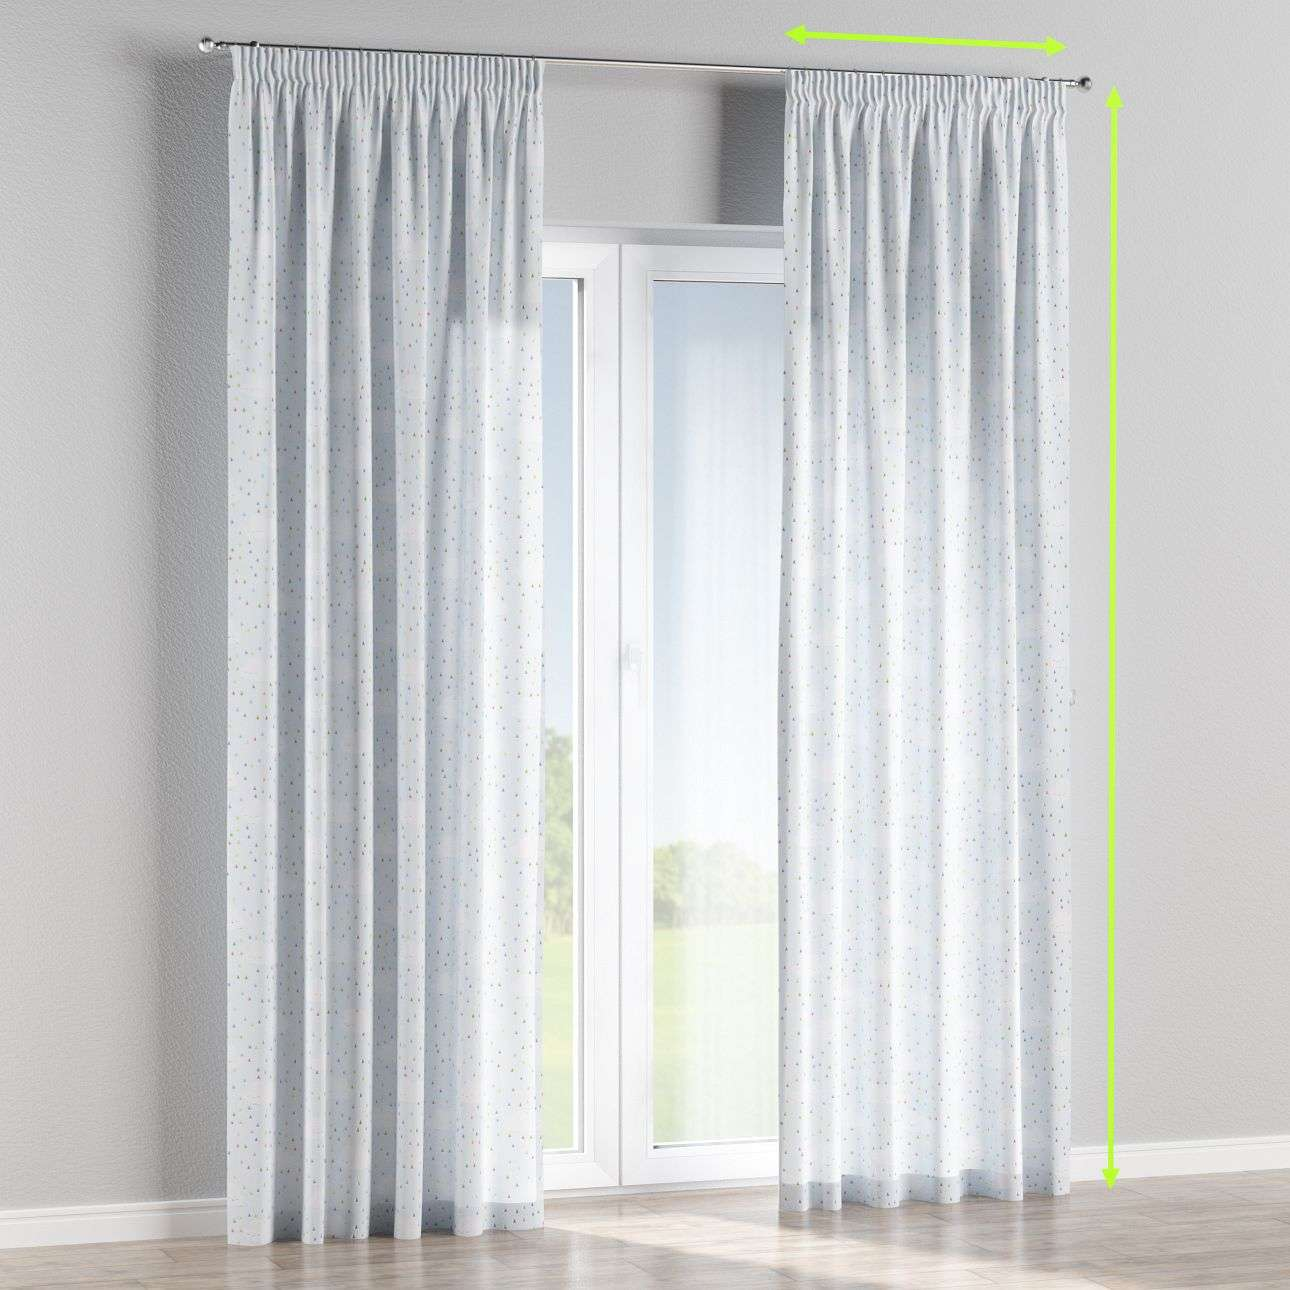 Pencil pleat curtains in collection Apanona, fabric: 151-03